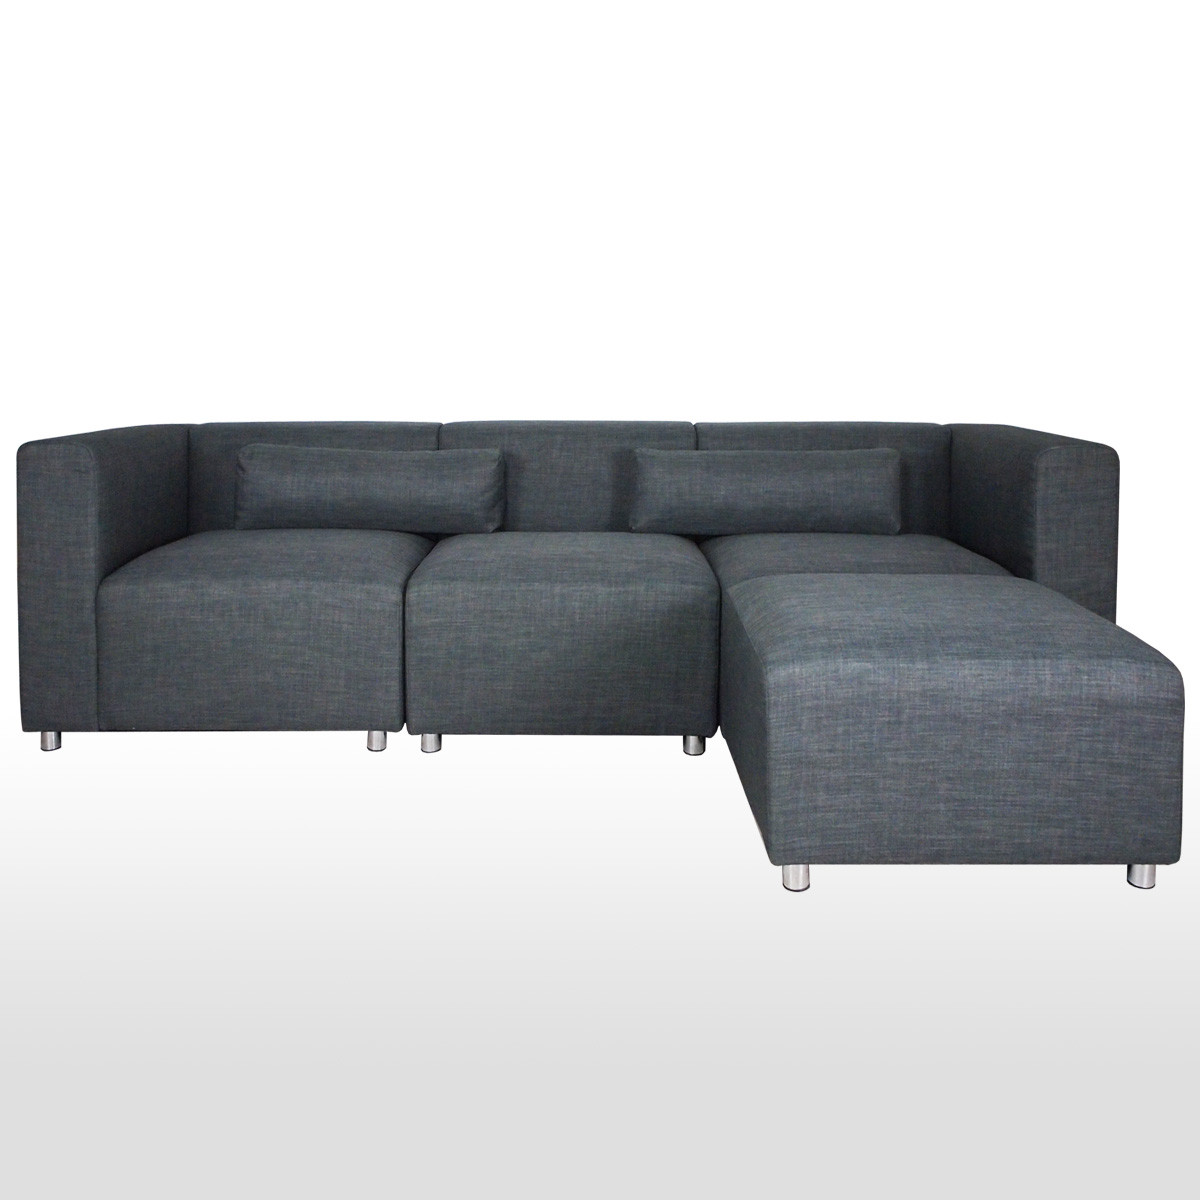 Modular Furniture Sofa: Grey Modular Sofa Grey Modular Sofa Sectional Pinterest